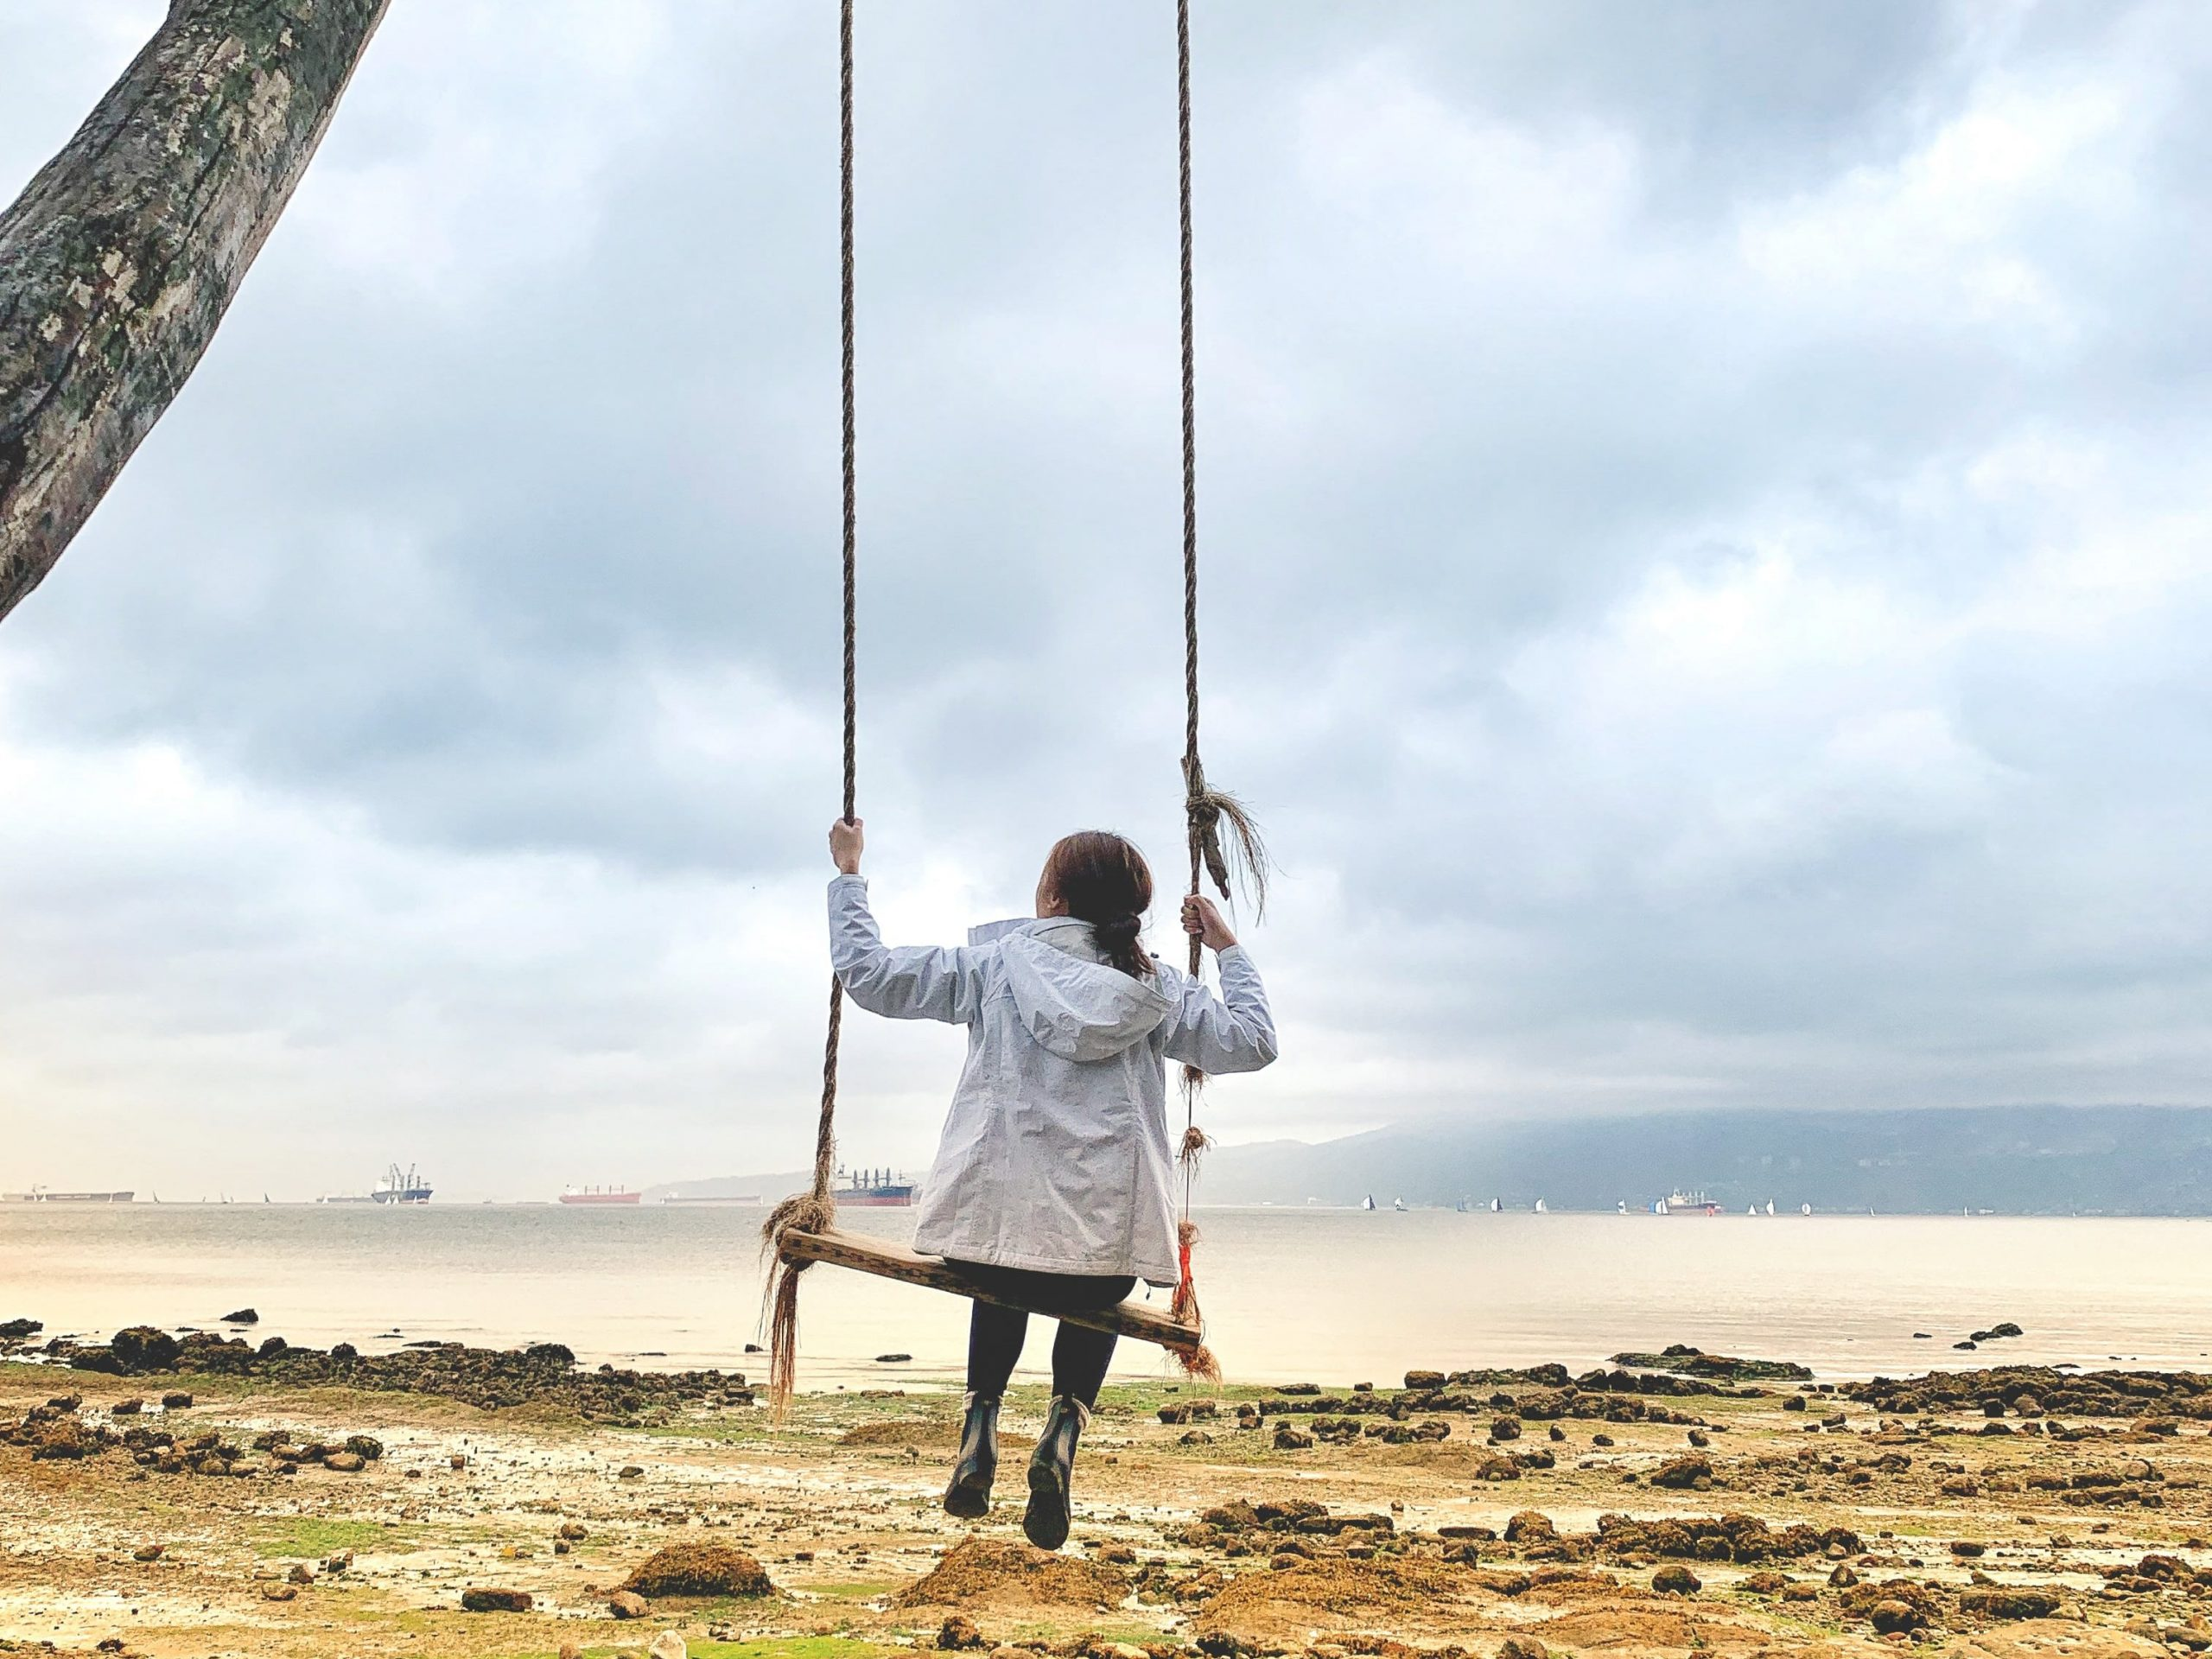 The swing at Kitslano Beach on a gloomy day